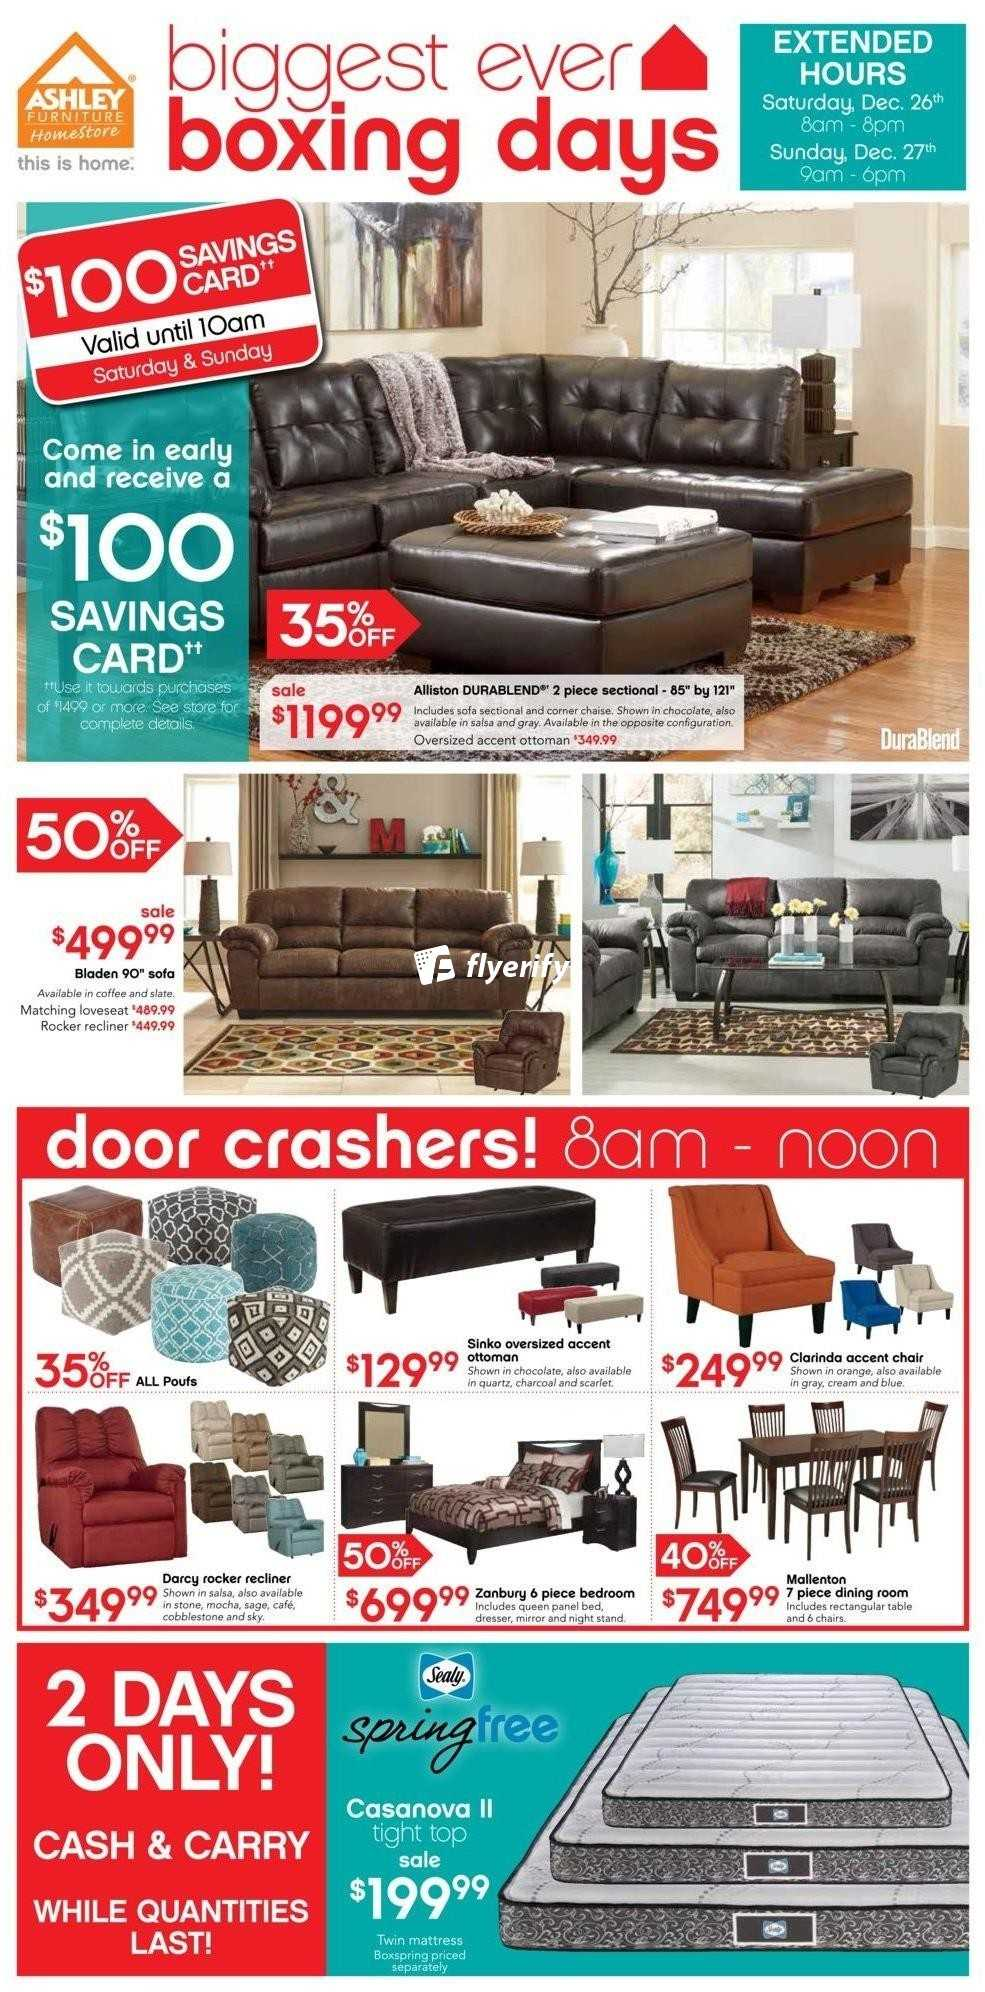 Ashley Furniture Home Store (ON) Boxing Day Flyer December 26 U0026 27